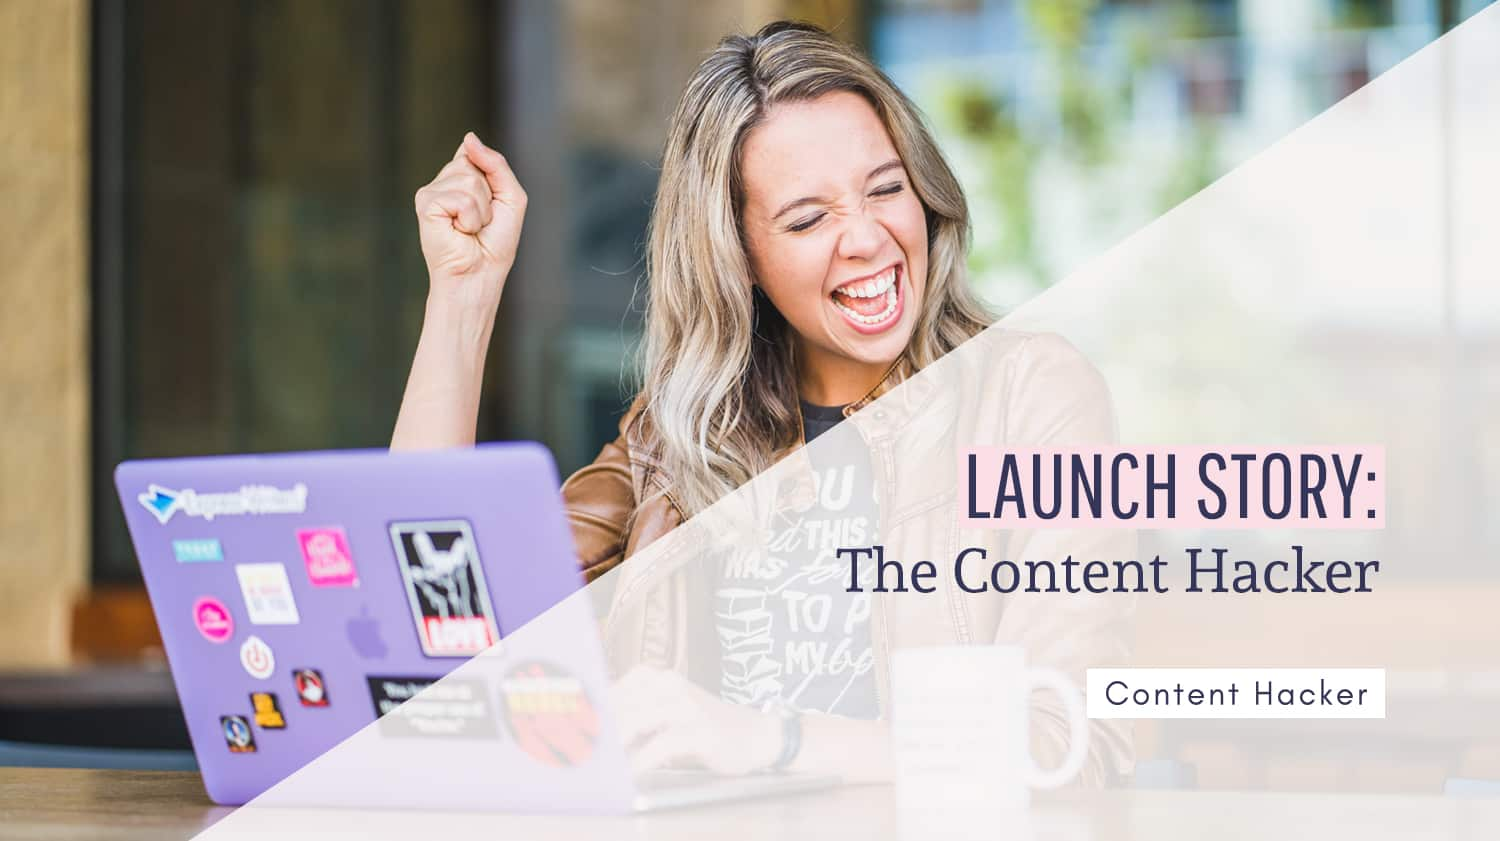 launch story of the content hacker